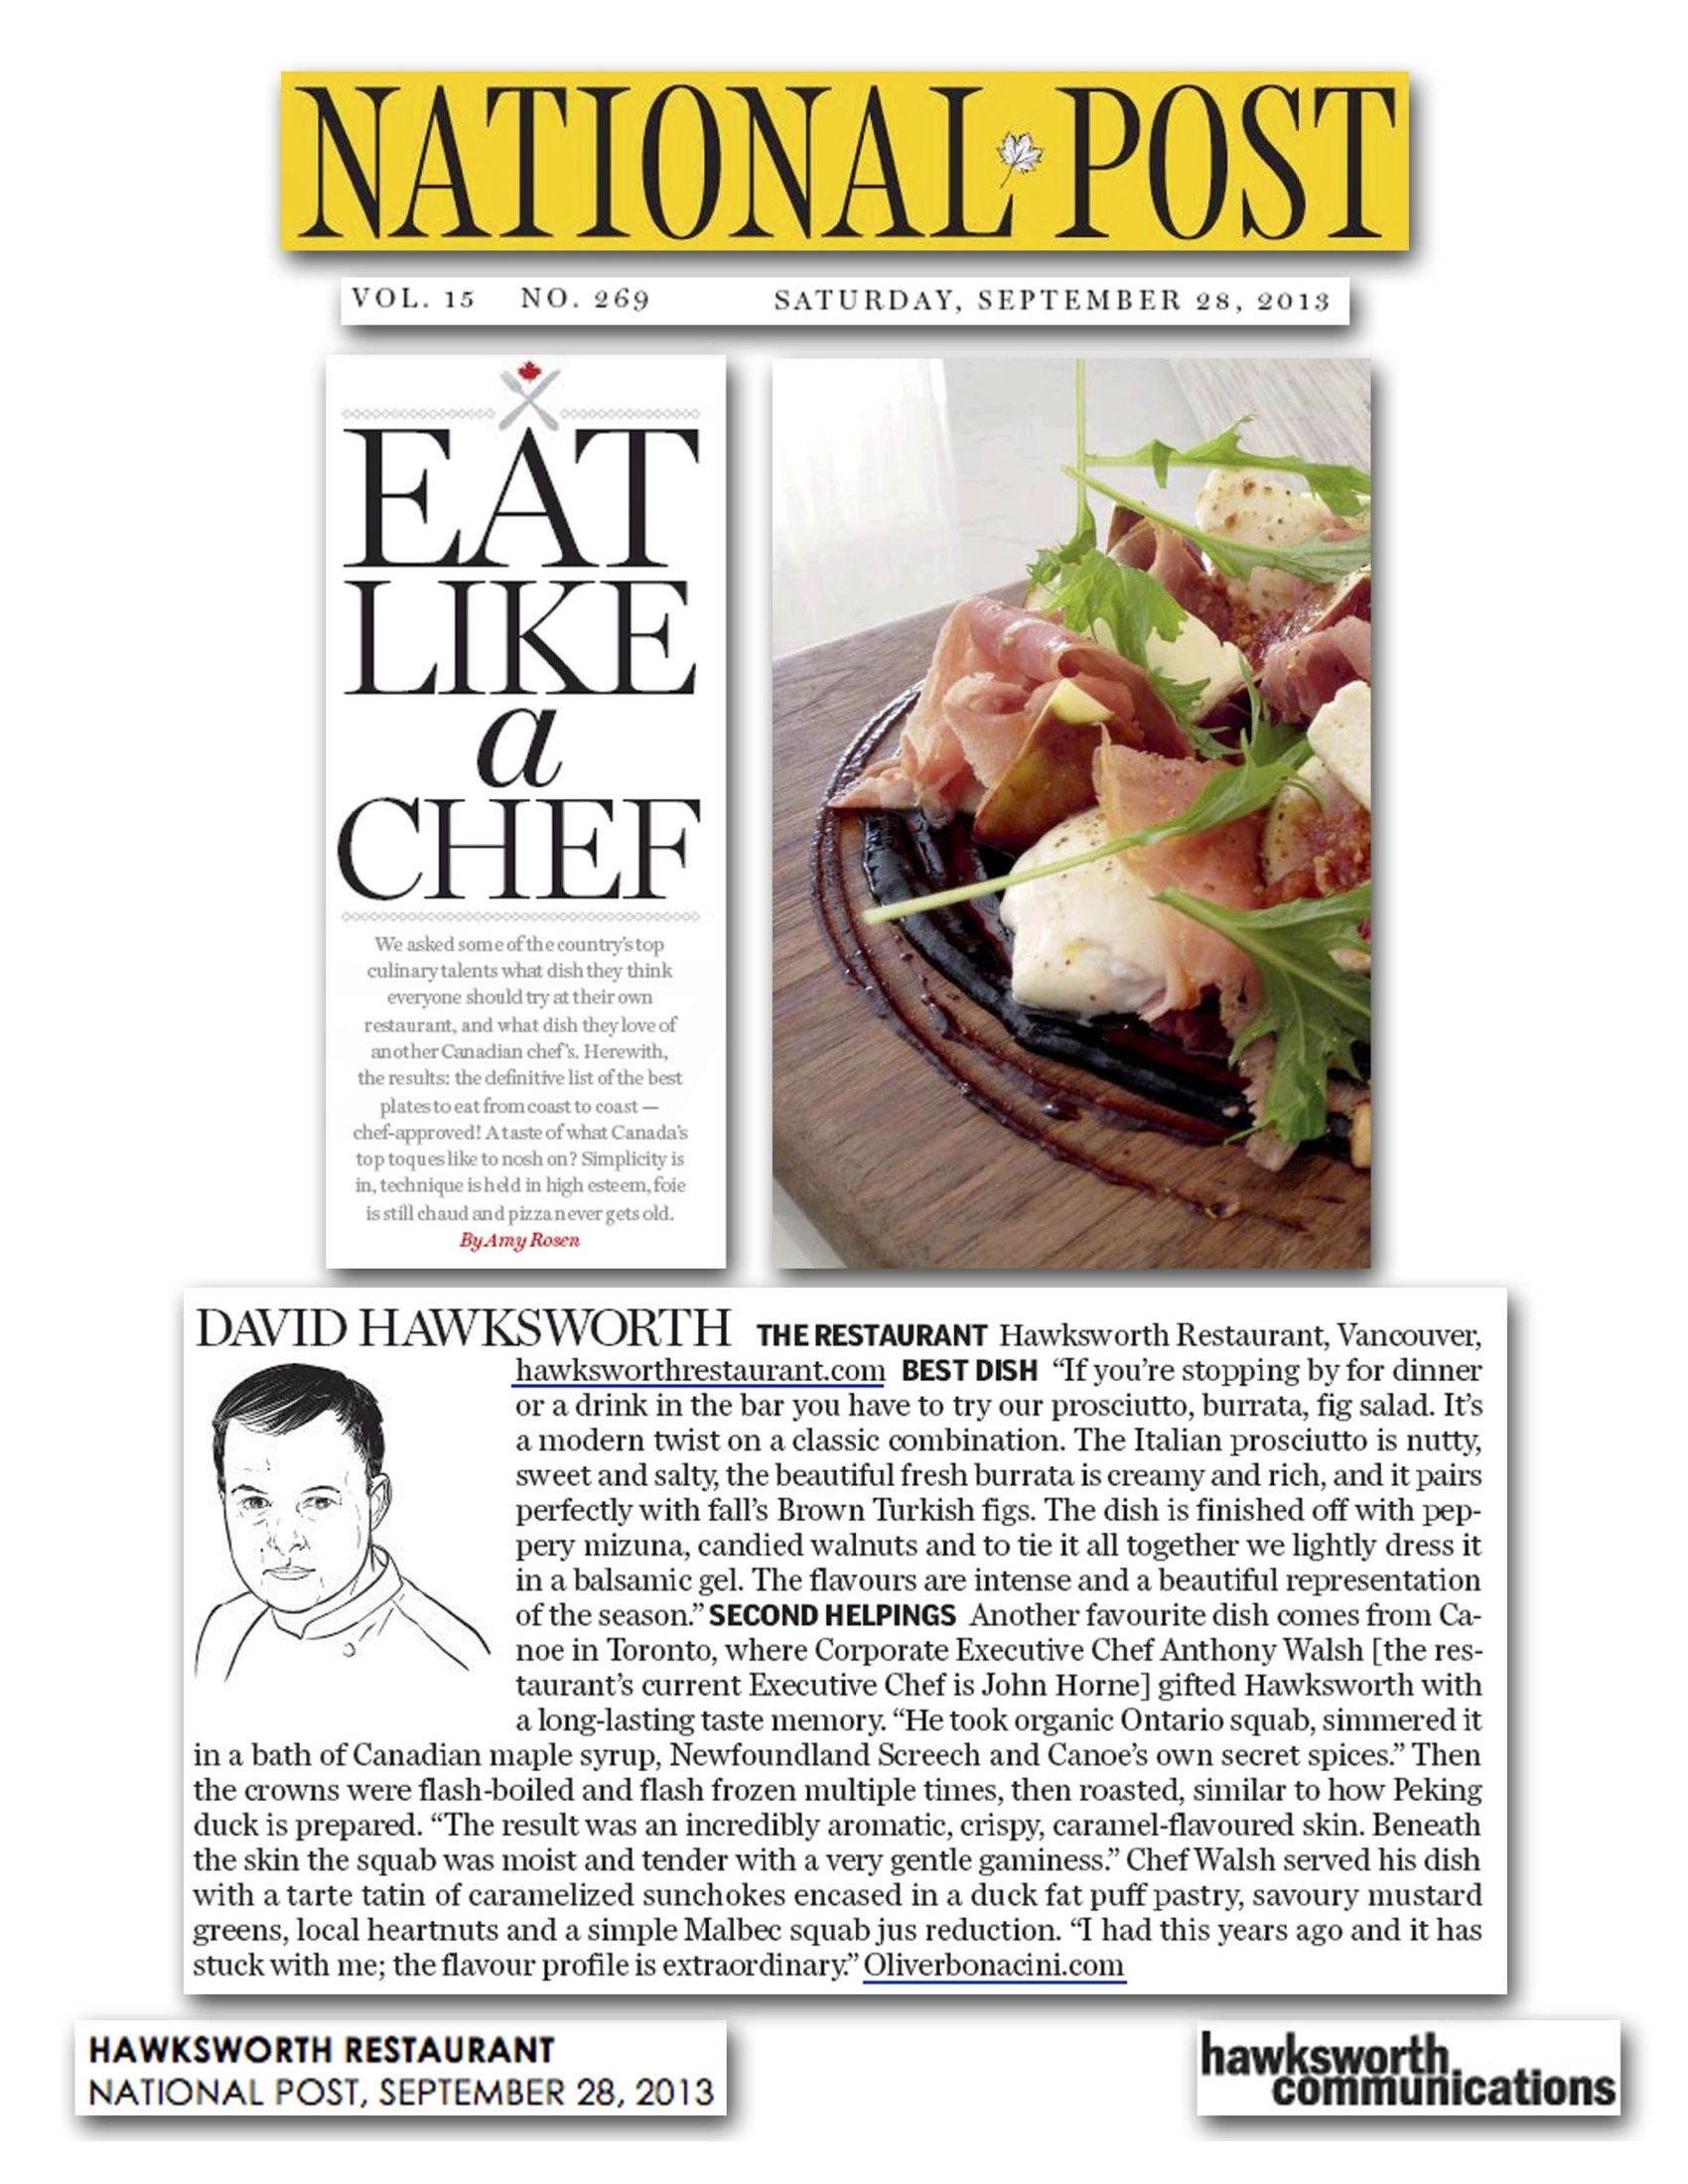 Hawksworth-Restaurant_130928_NationalPost